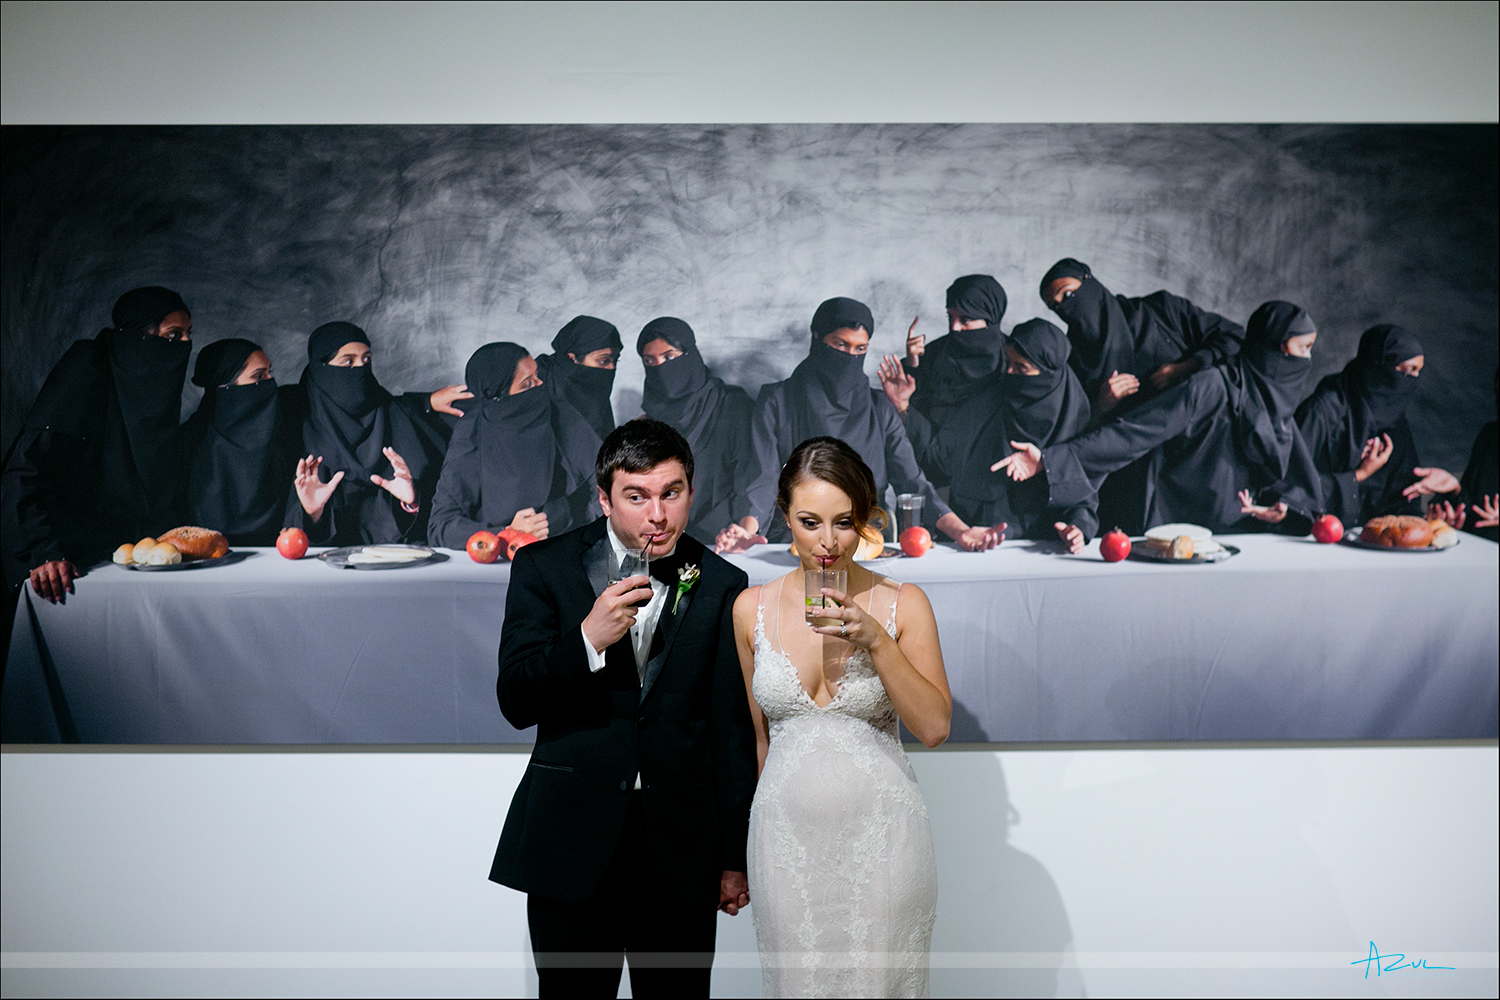 Fun wedding day B&G portrait with museum art while at 21c Museum & Hotel in Durham